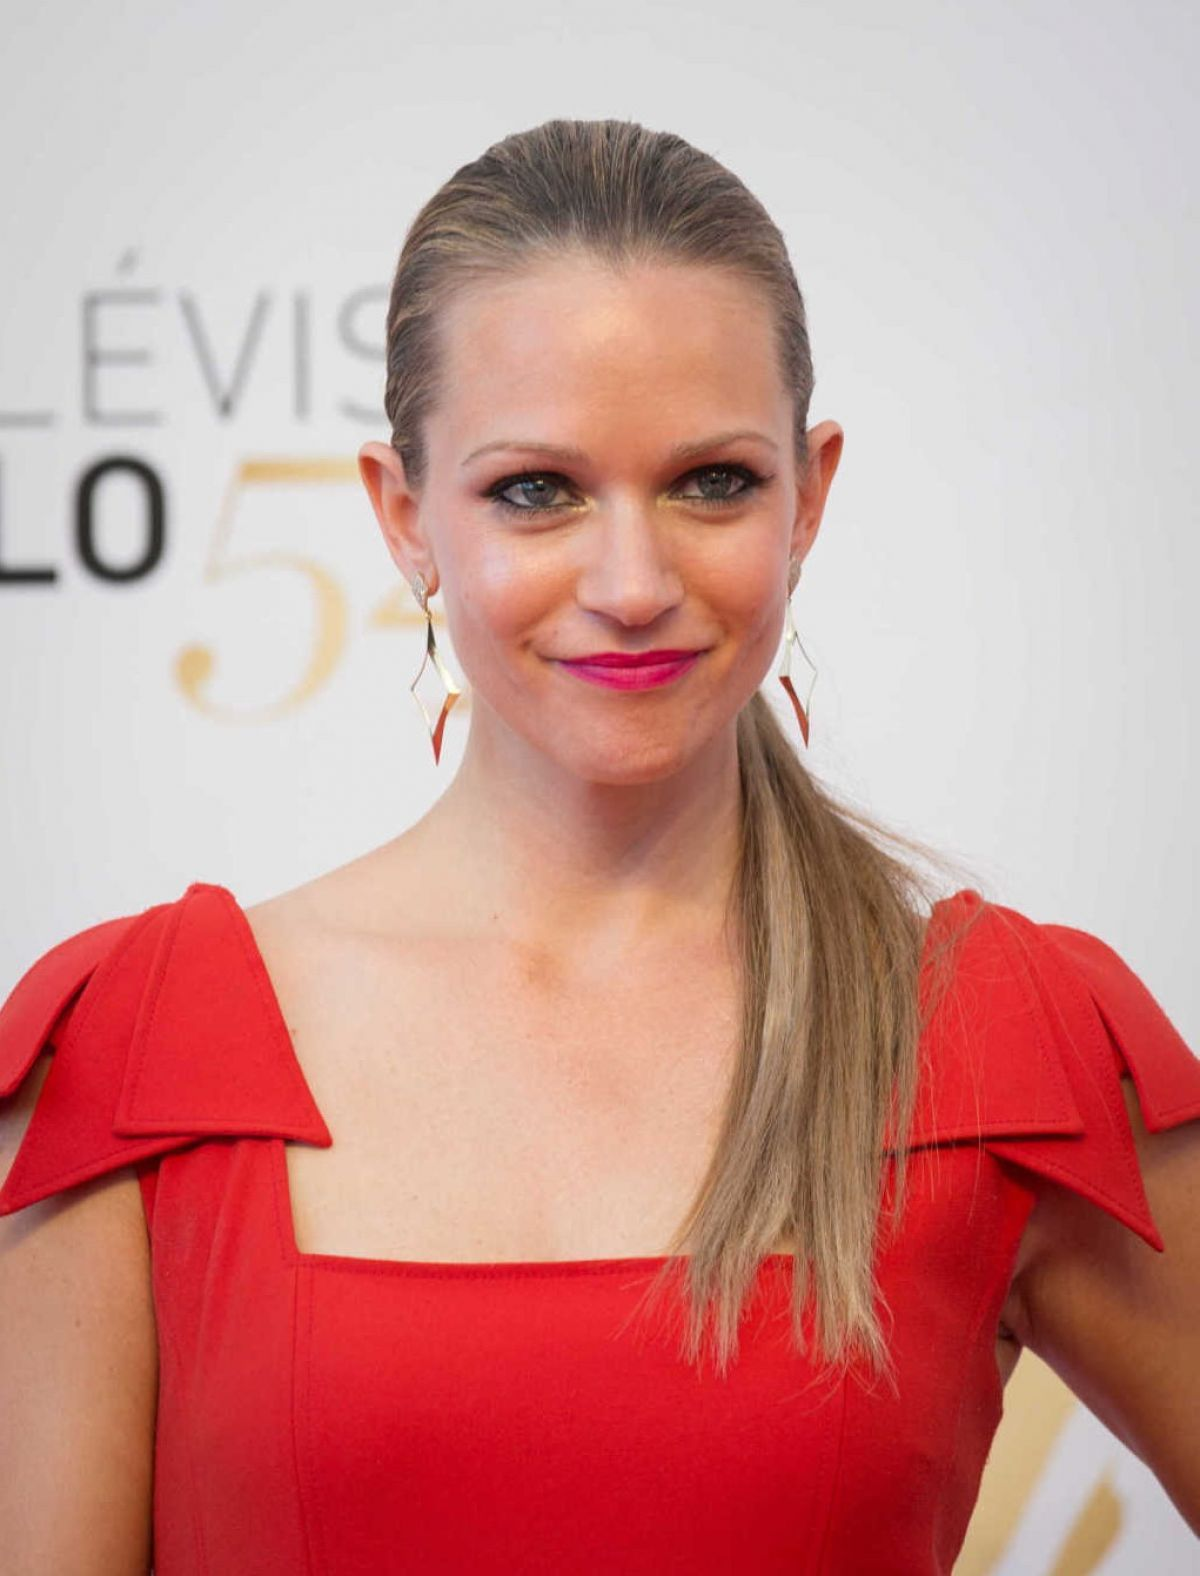 35 Hot Pictures Of A.J Cook From Criminal Minds Will Make